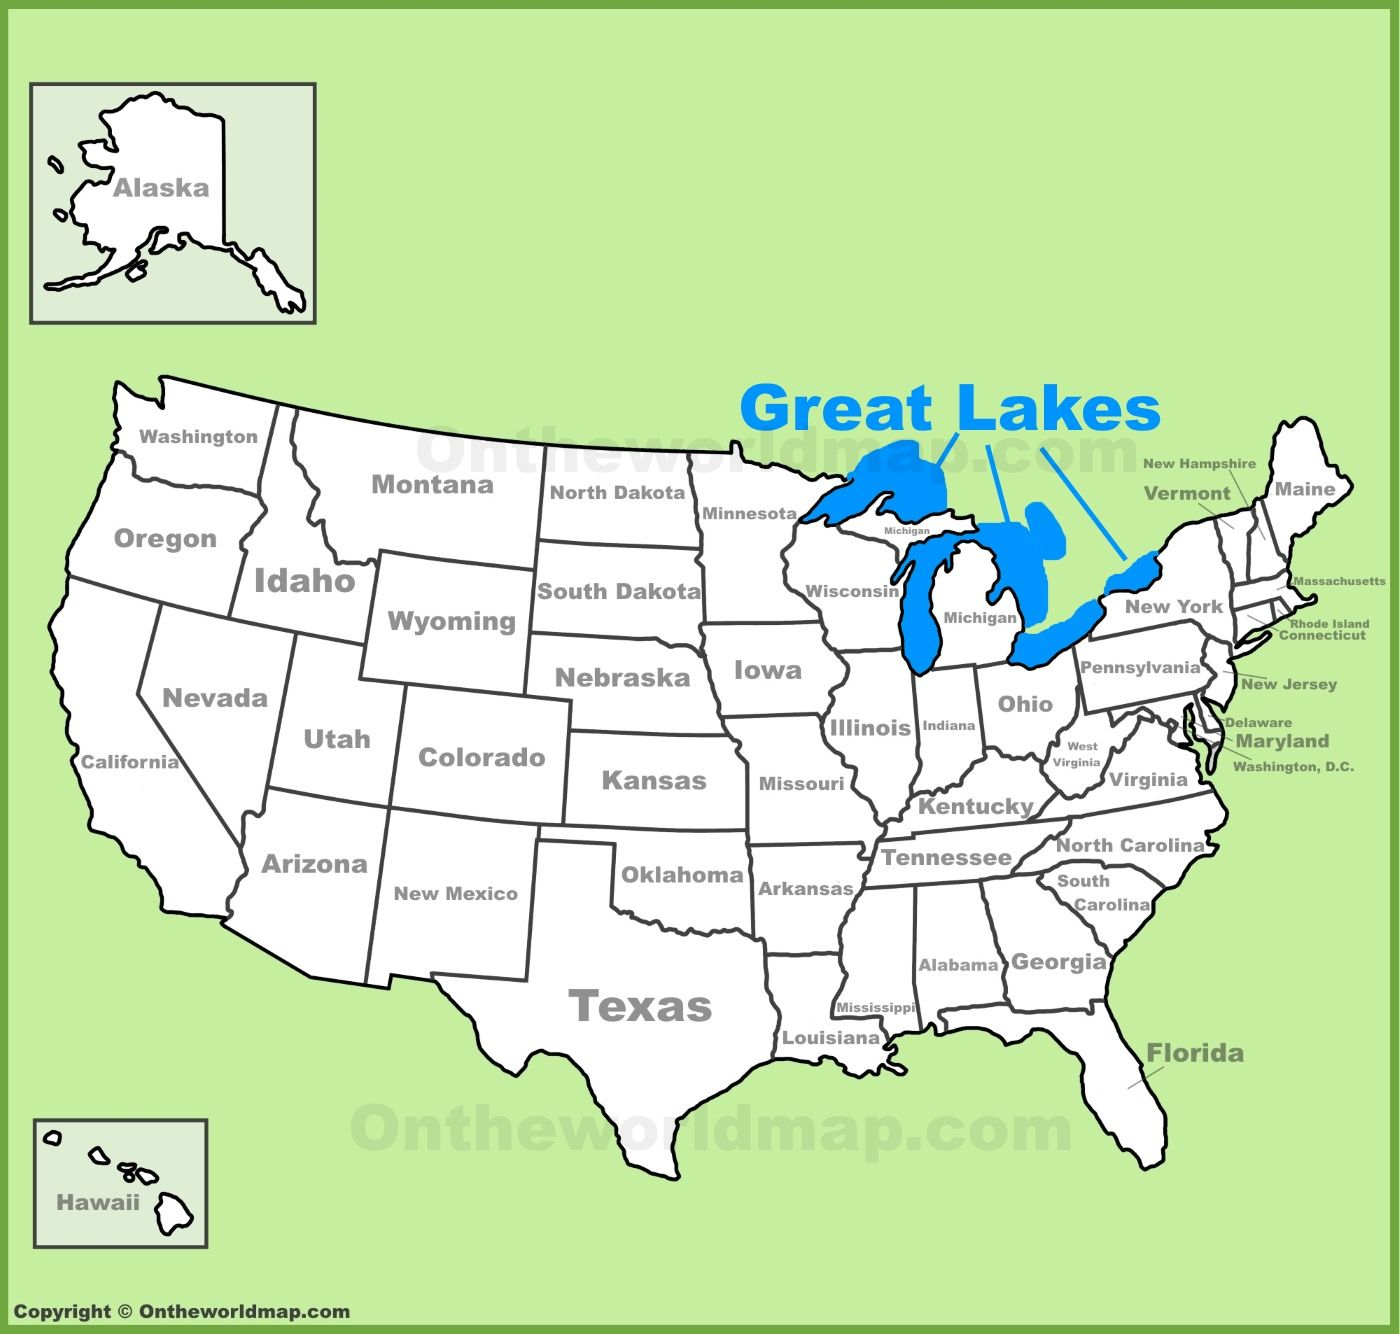 Great Lakes Location On The U S Map